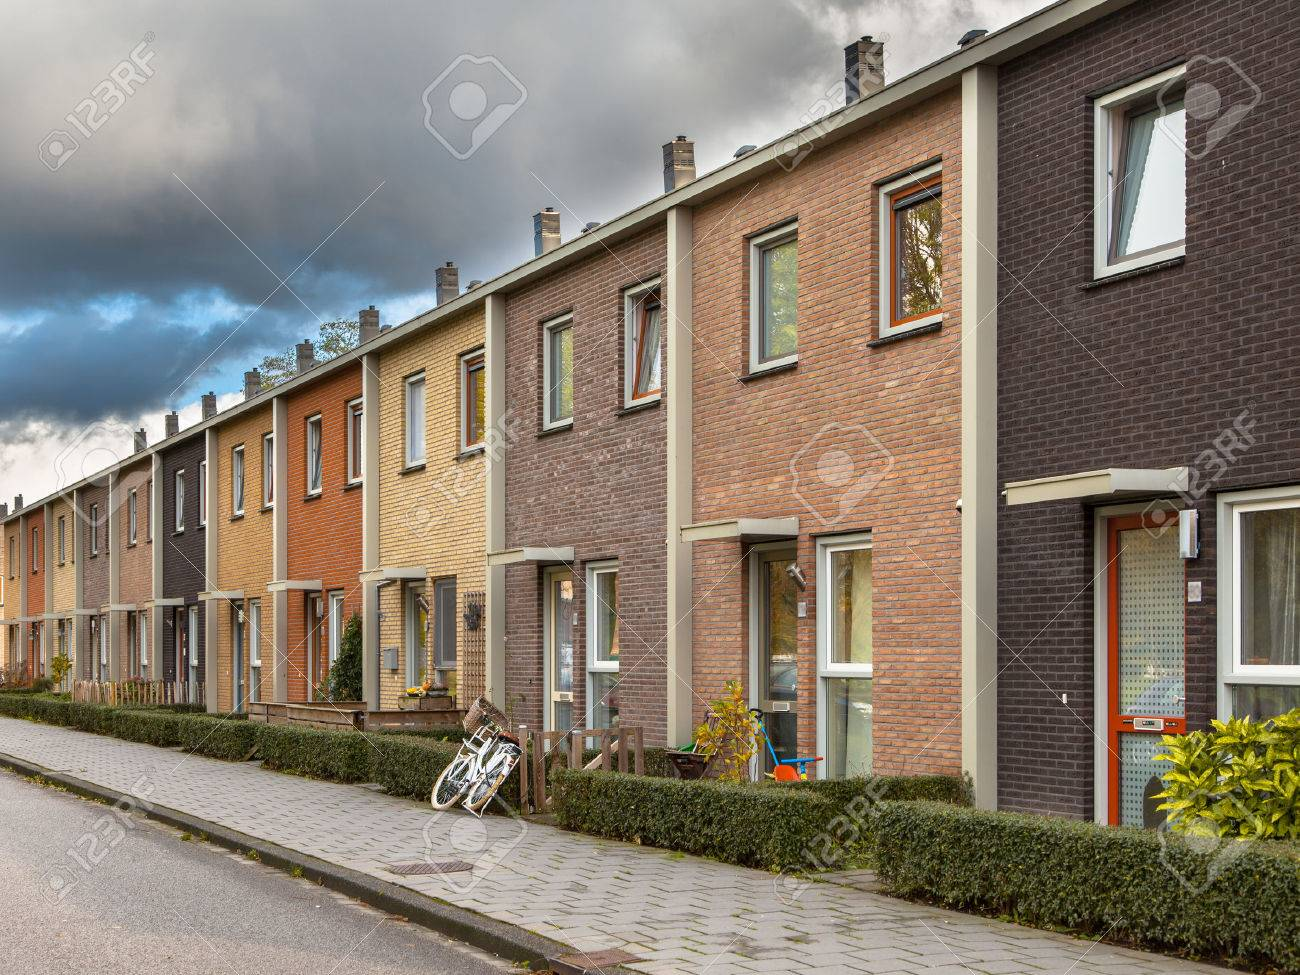 Modern Terra Colored Middle Class Terraced Houses in Europe Stock Photo -  24103117